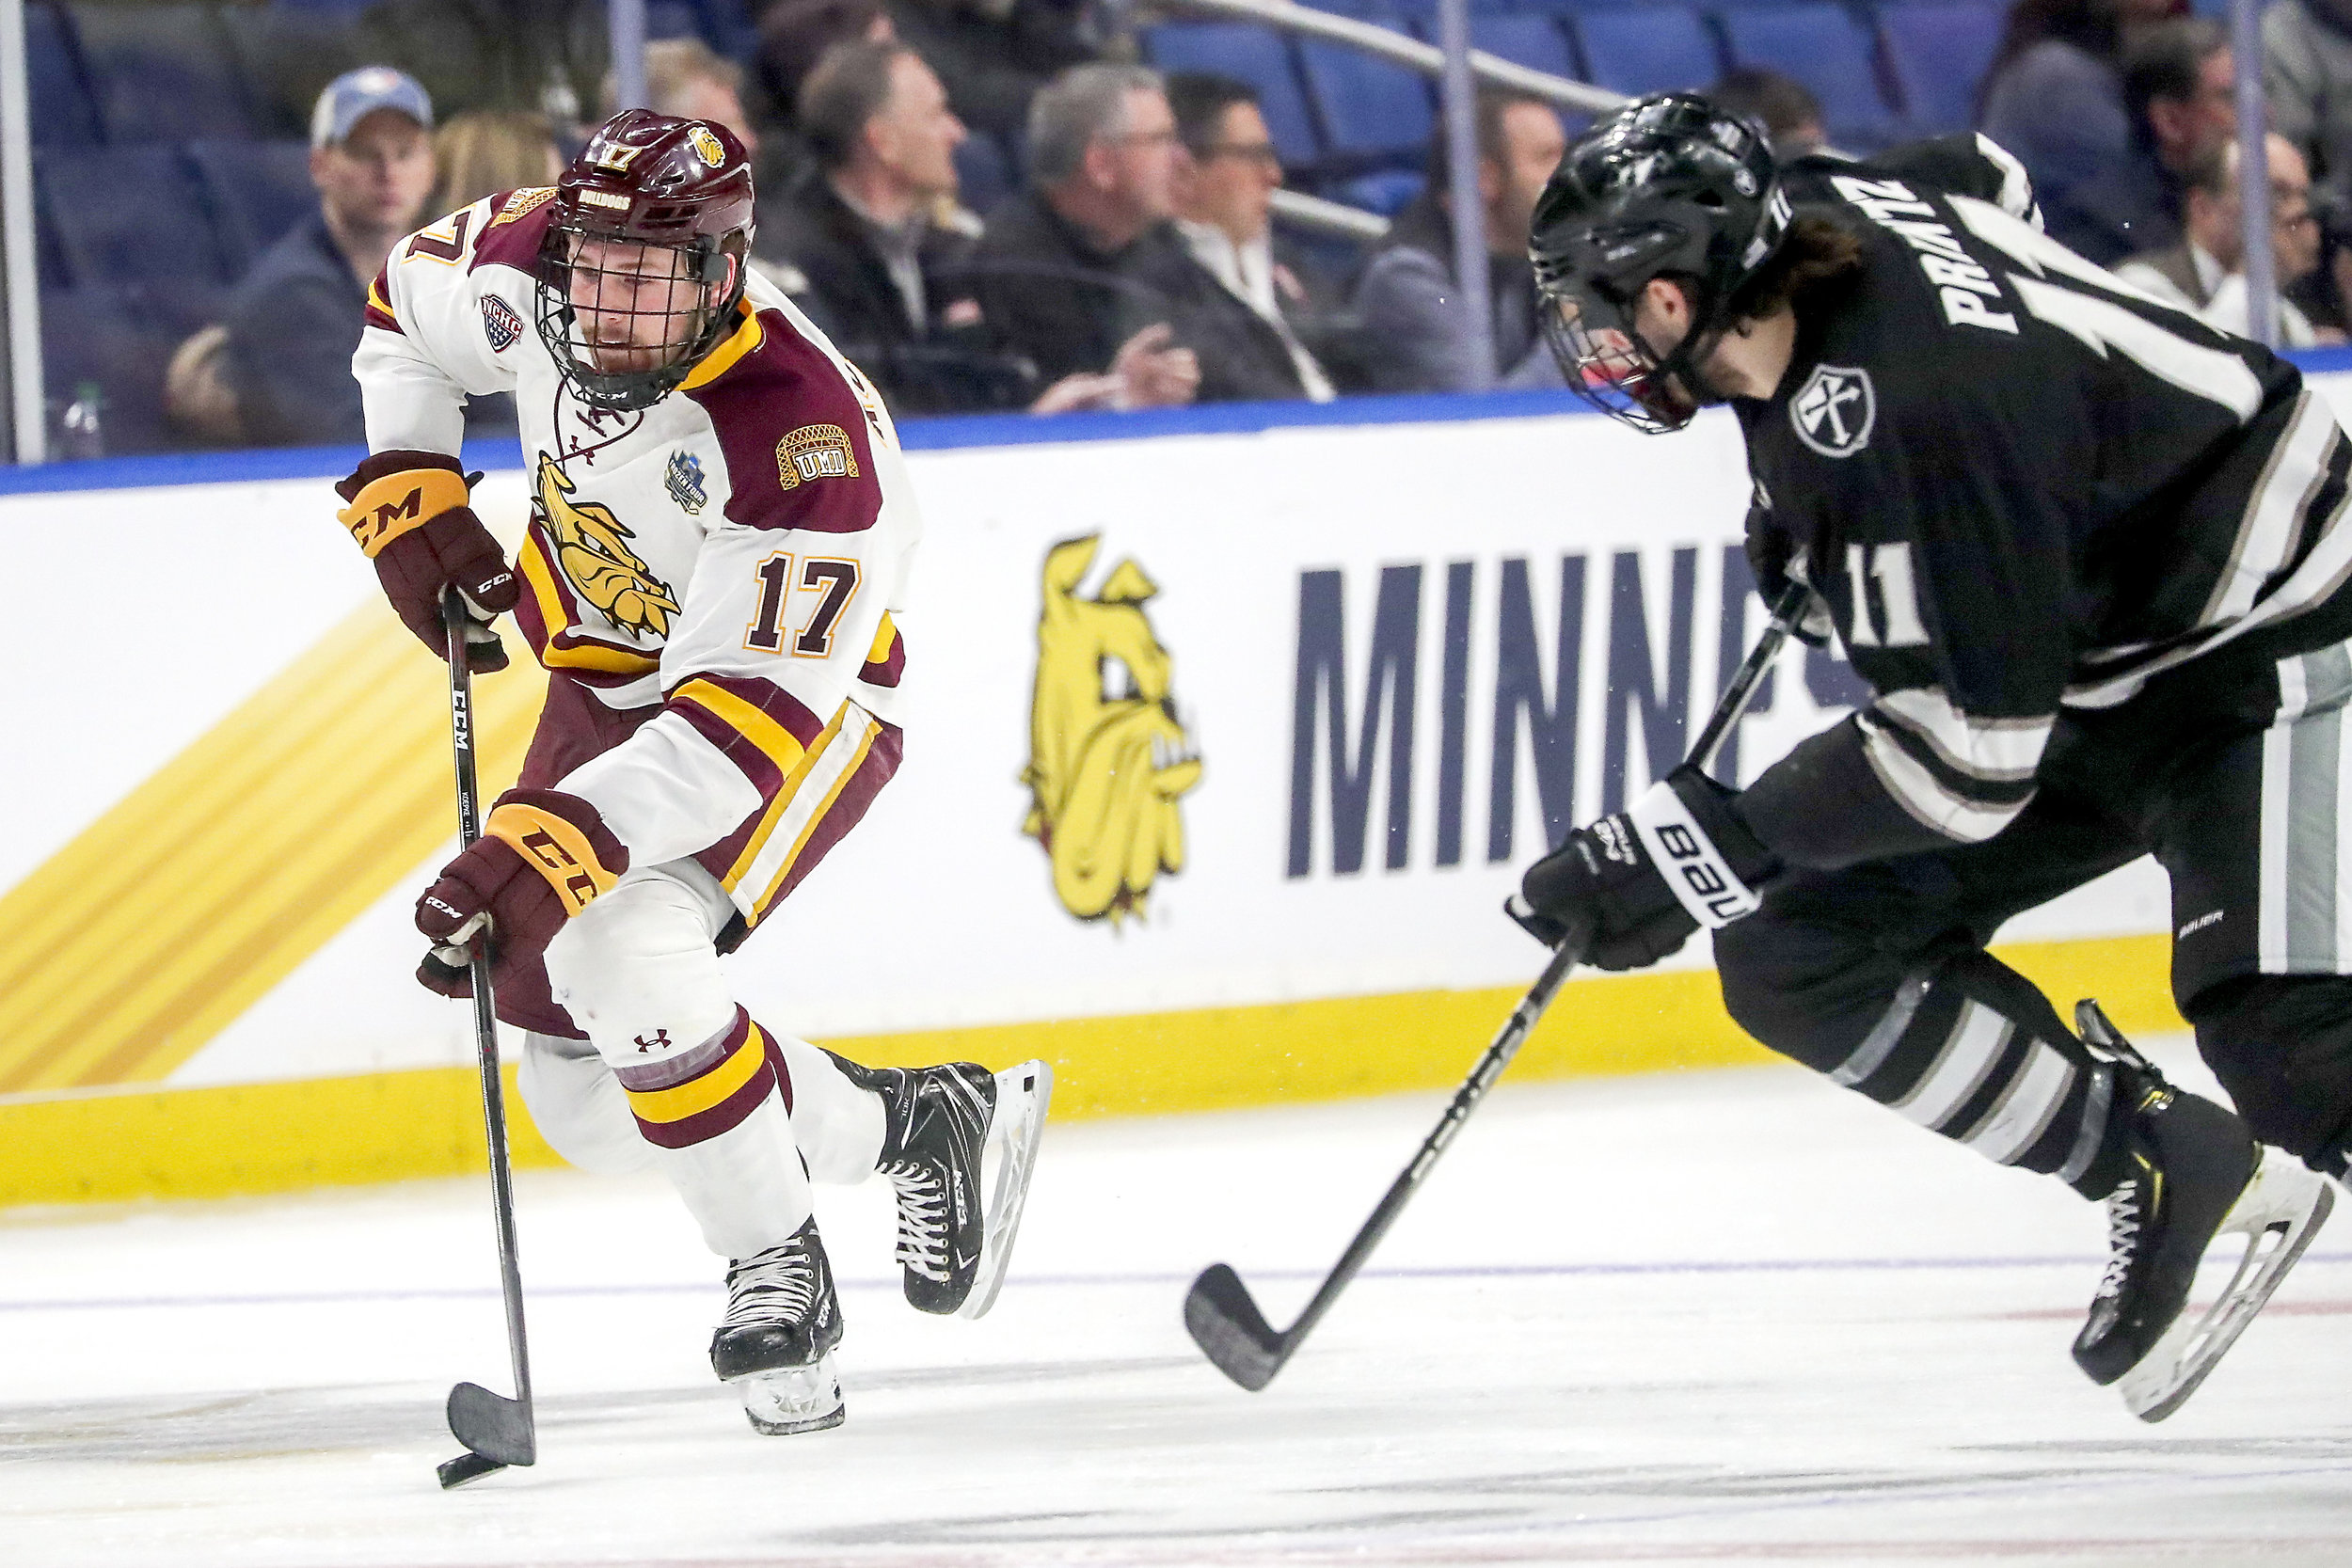 Cole Koepke (17) keeps the puck away from Friars forward Greg Printz (11) during the 2019 Frozen Four. Photo by: Clint Austin